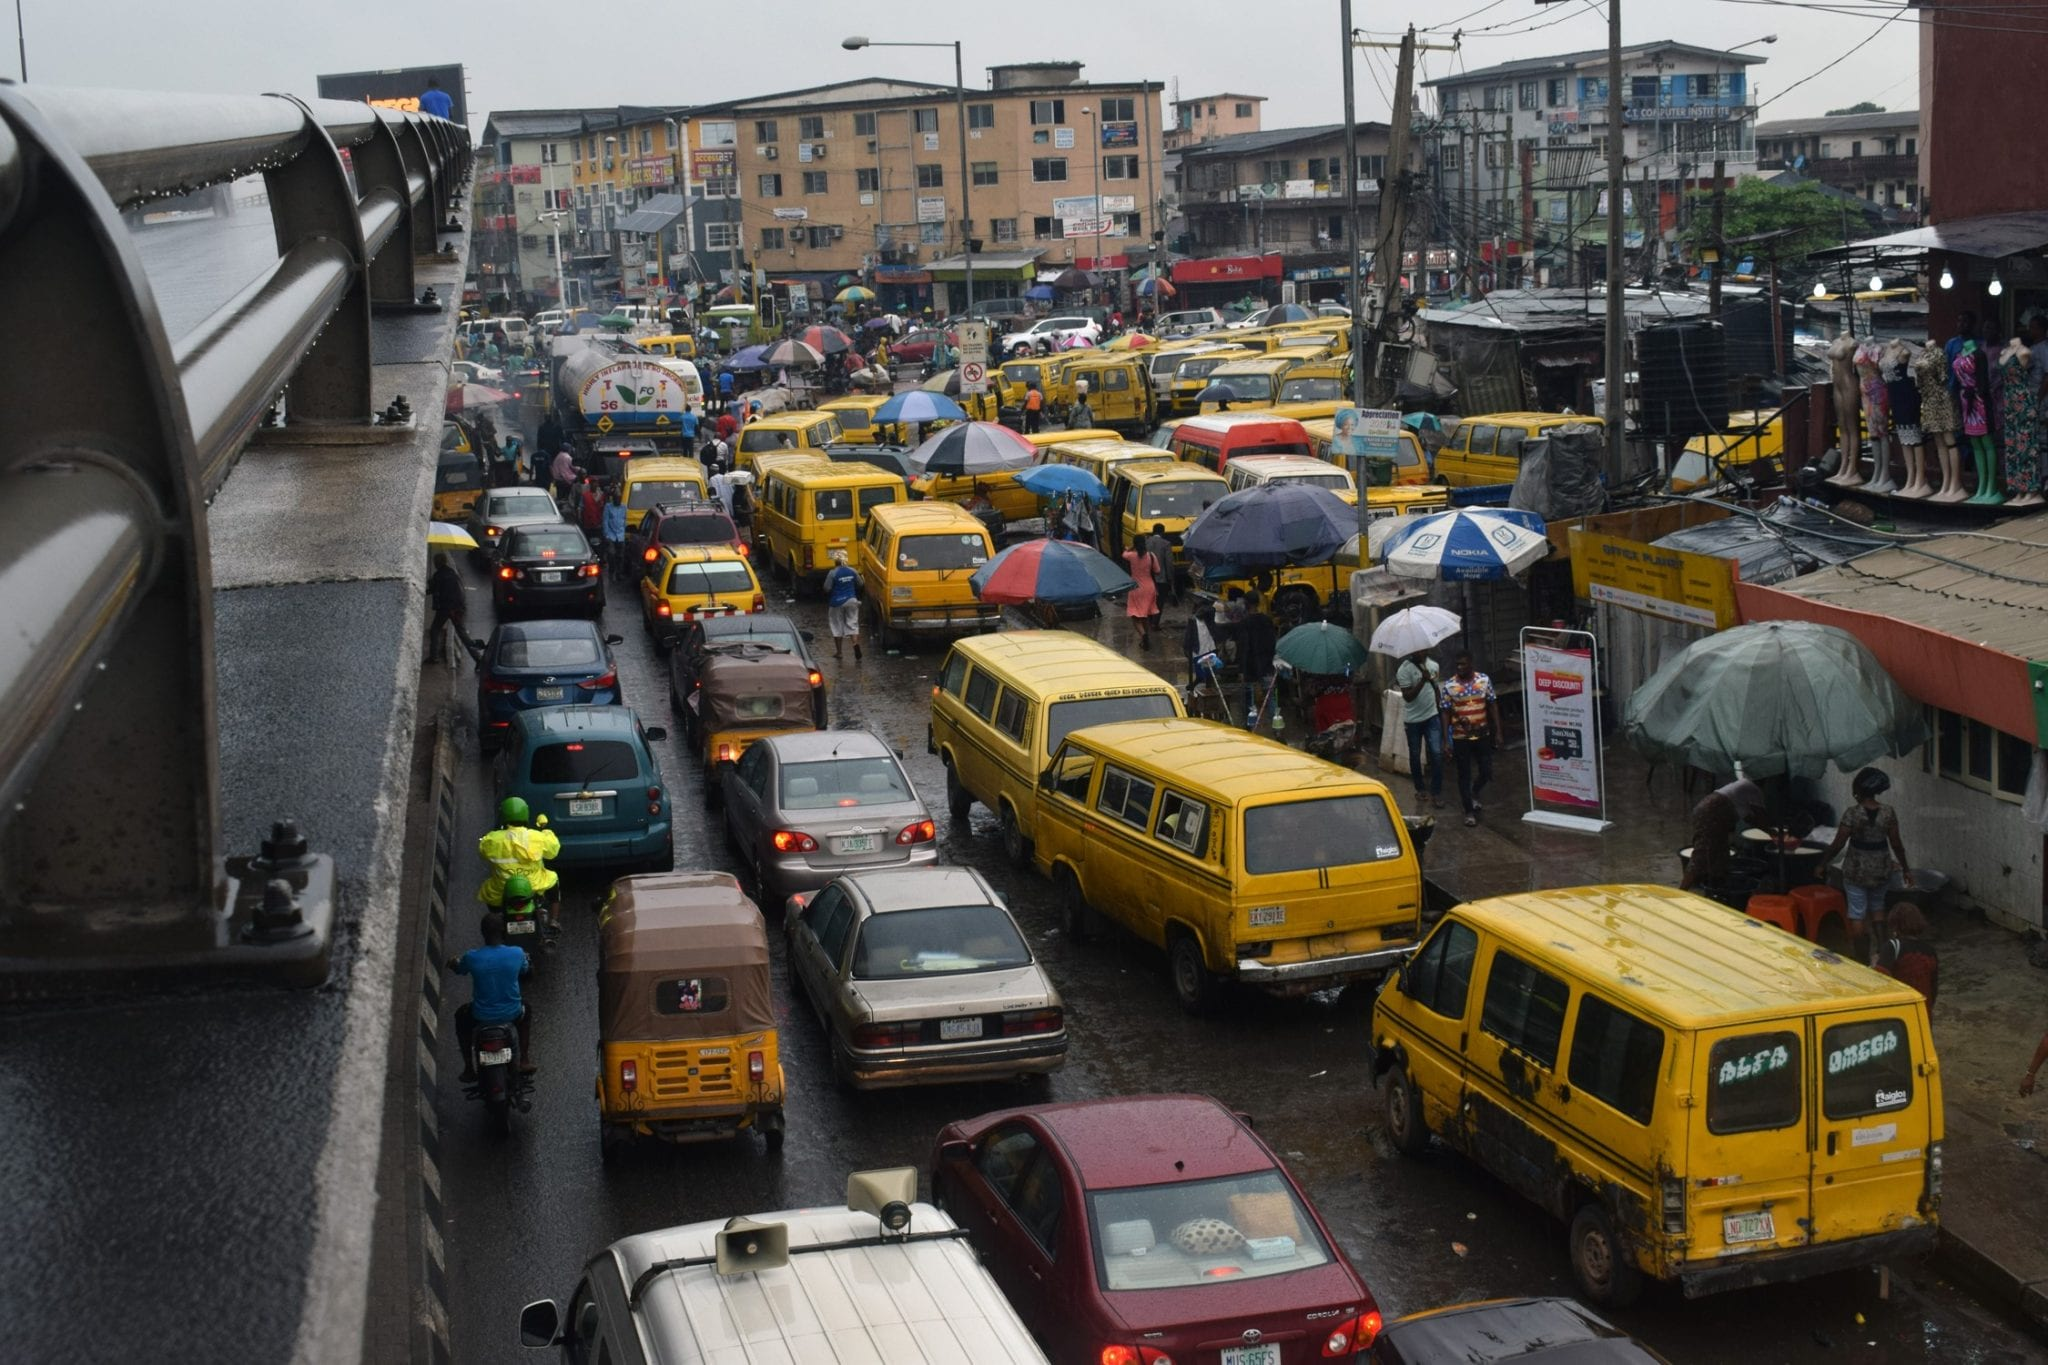 Yaba, Lagos, Nigeria - A view under bridge of Ojuelegba